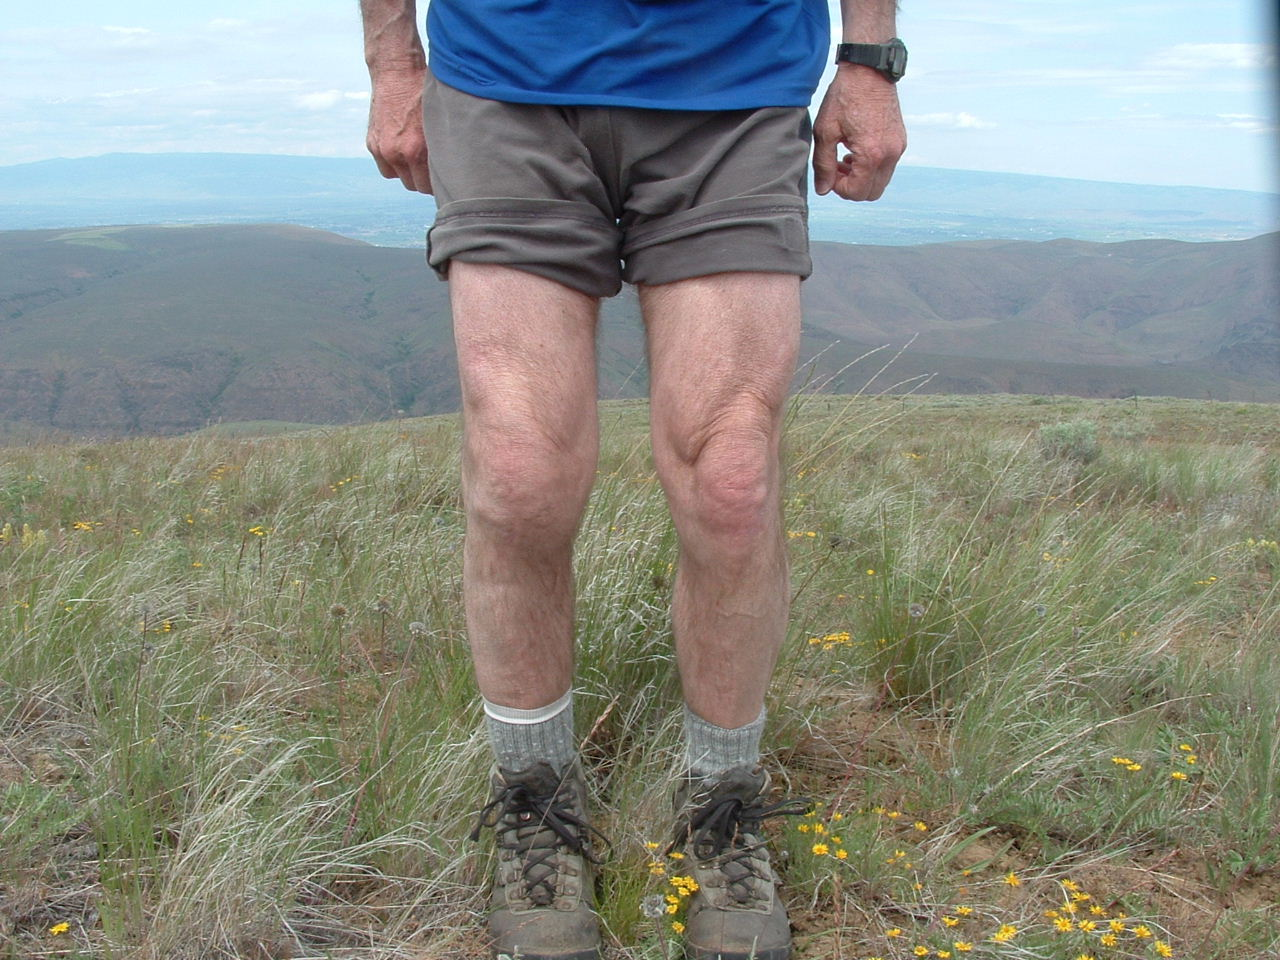 Where can you find knee replacement exercise videos?